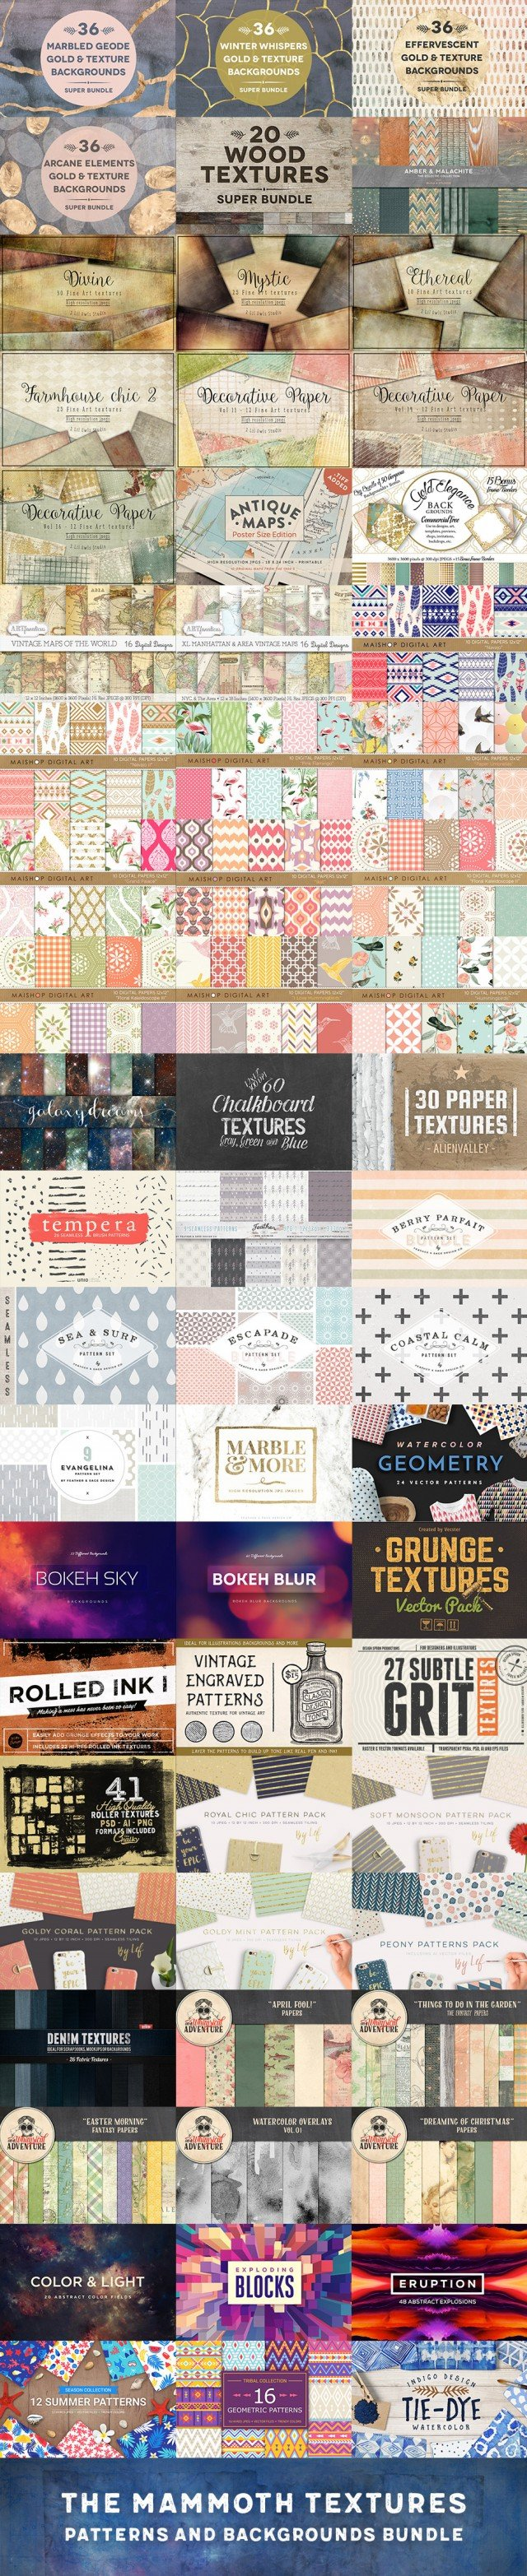 Mammoth Textures Bundle